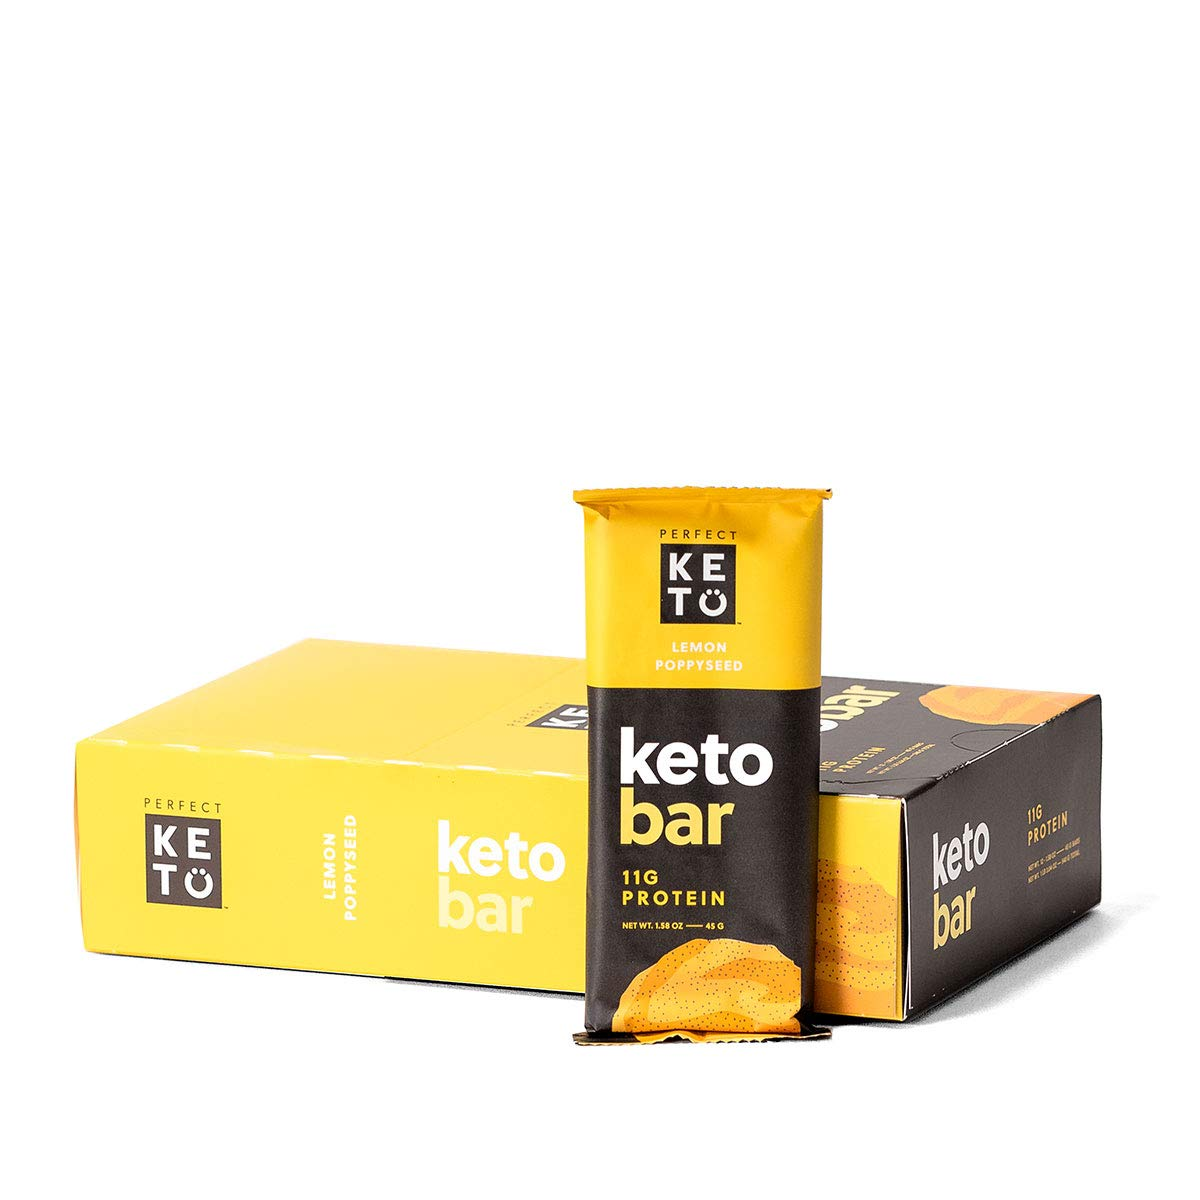 Perfect Keto Bar, Keto Snack (12 Count), No Added Sugar. 10g of Protein, Coconut Oil, and Collagen, with a Touch of Sea Salt and Stevia. (3 Boxes, Lemon Poppyseed) by Perfect Keto